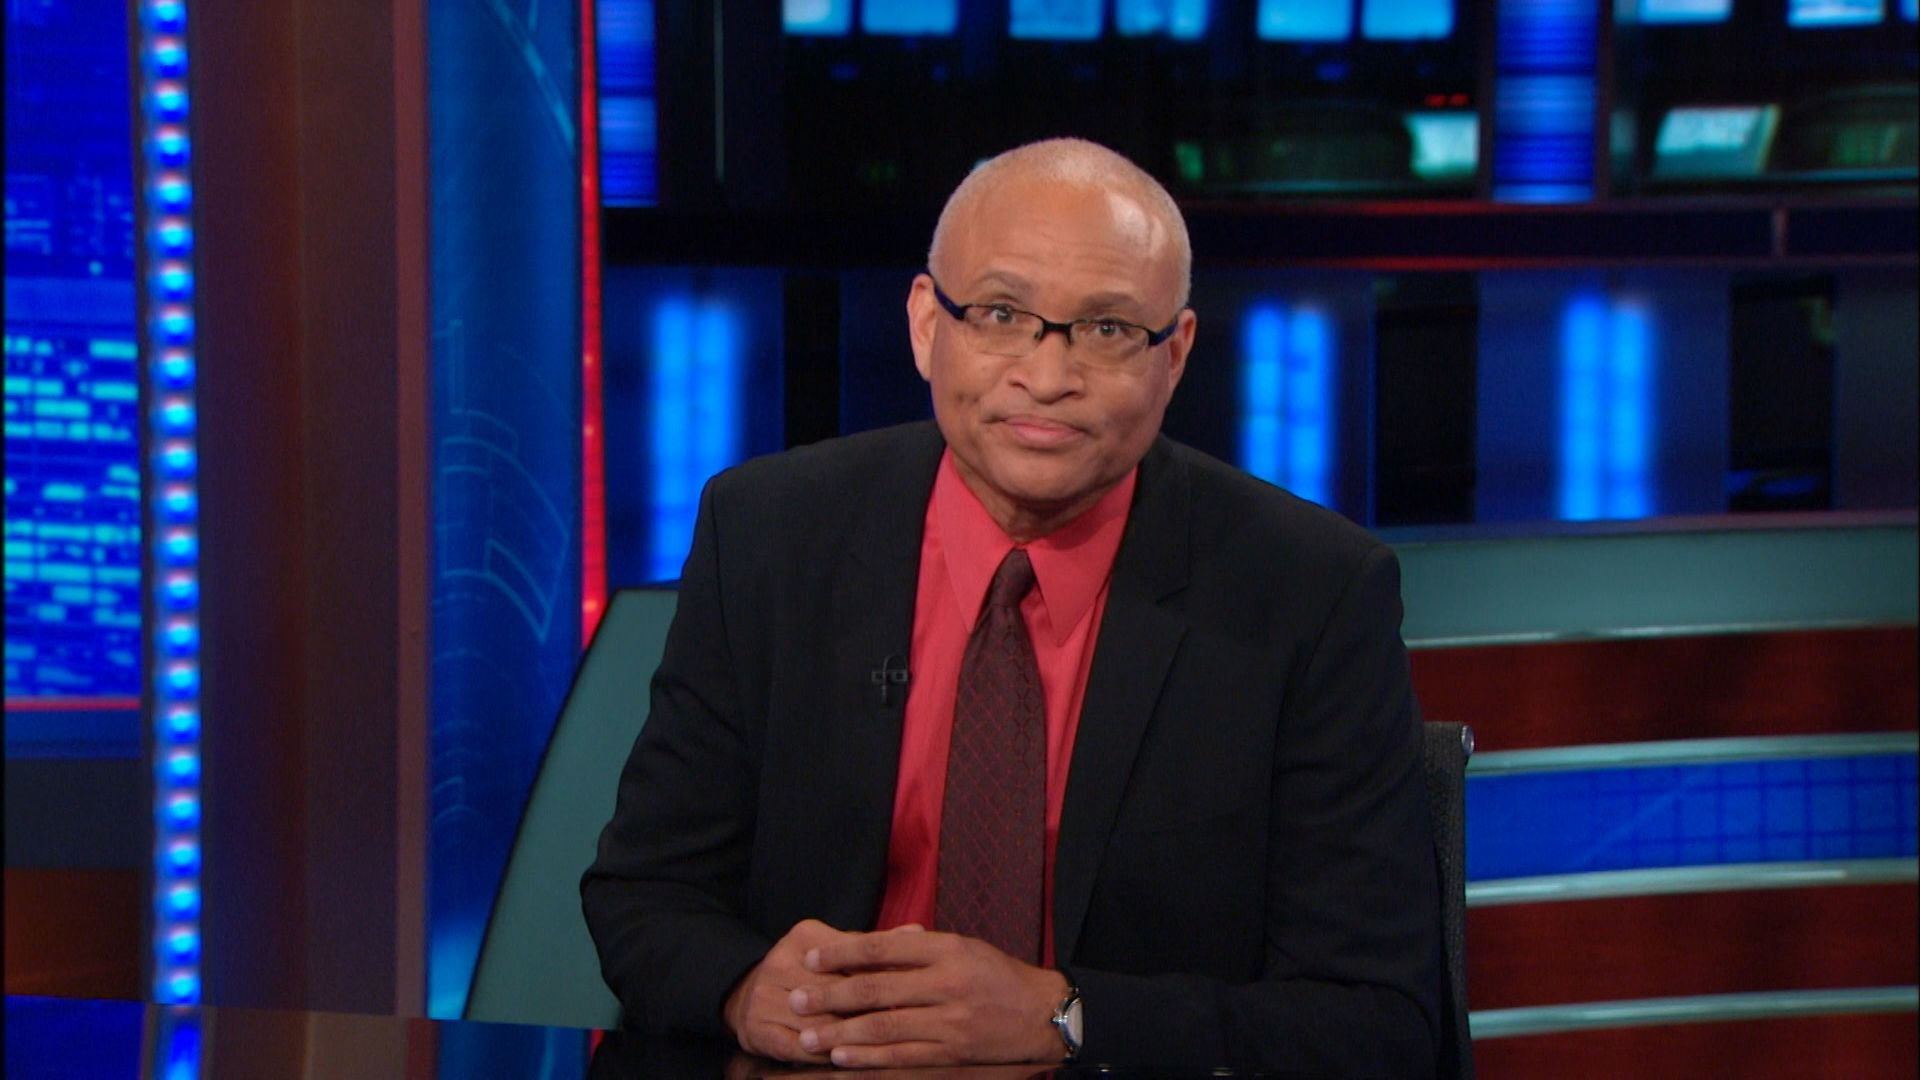 larry wilmore bill cosbylarry wilmore young, larry wilmore twitter, larry wilmore wiki, larry wilmore, larry wilmore nightly show, larry wilmore daily show, larry wilmore minority report, larry wilmore youtube, larry wilmore imdb, larry wilmore fresh prince, larry wilmore catholic, larry wilmore ratings, larry wilmore net worth, larry wilmore wife, larry wilmore height, larry wilmore bill cosby, larry wilmore tickets, larry wilmore bernie sanders, larry wilmore confederate flag, larry wilmore review